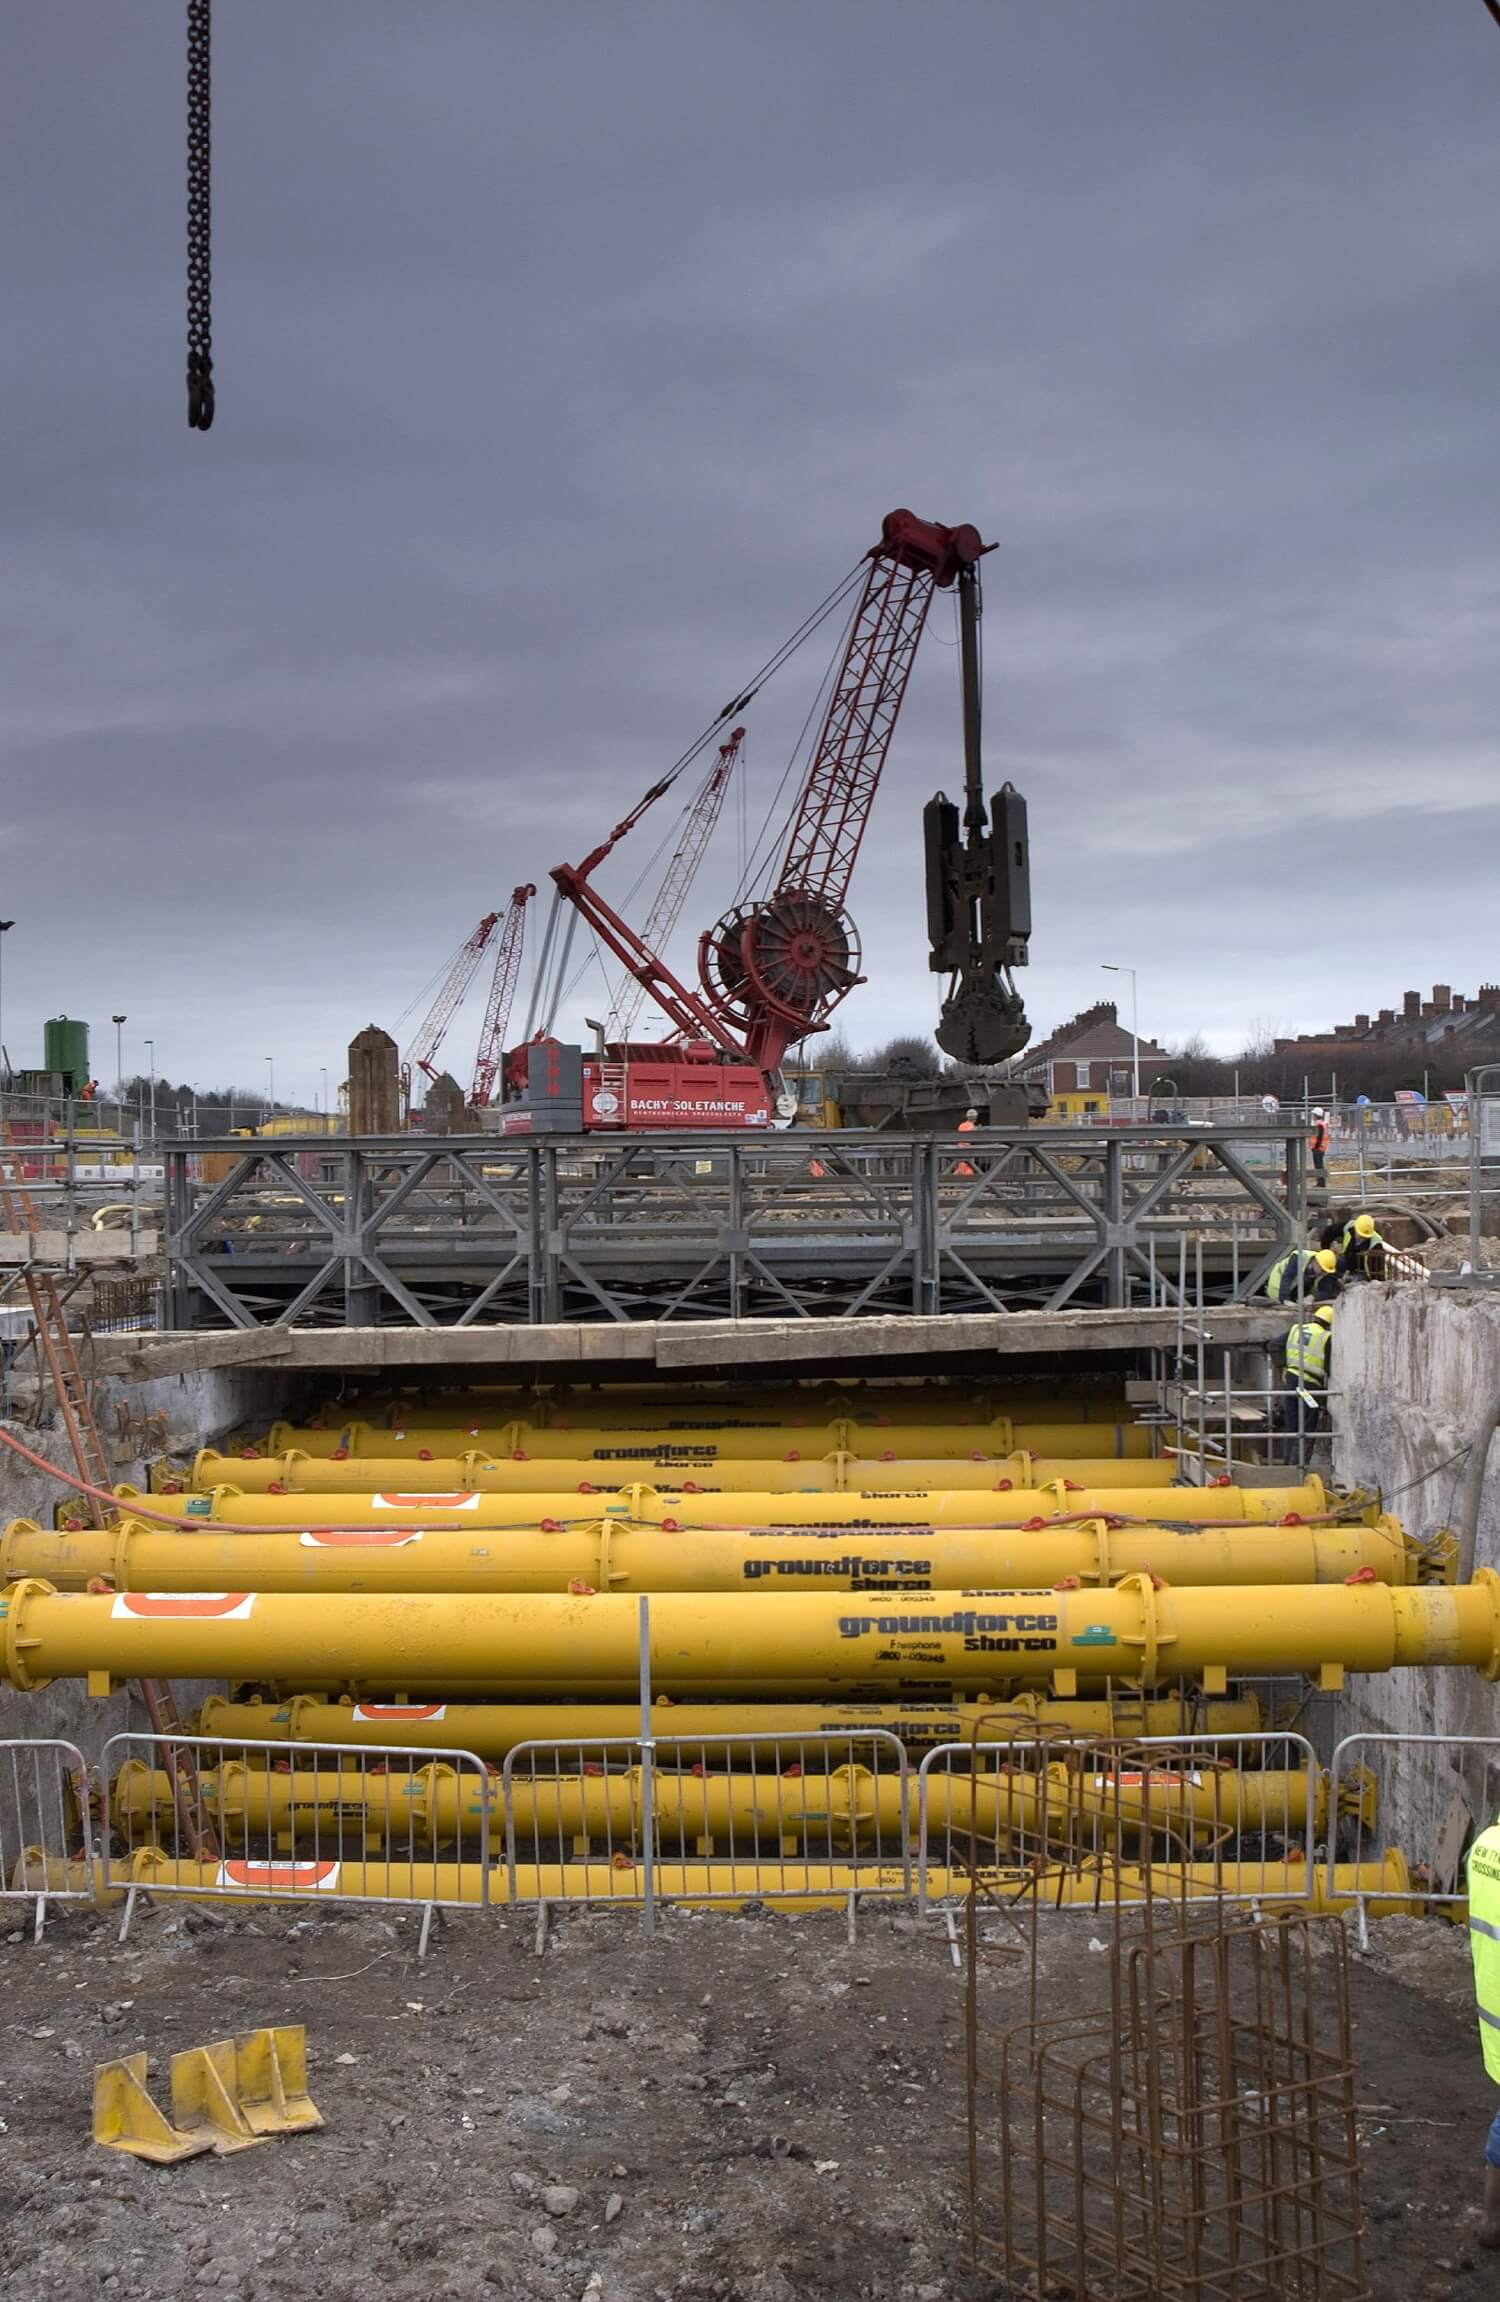 Retaining Wall Solution - New Tyne Tunnel Project - Diaphragm Wall Secant Wall Contiguous Wall CFA (6)